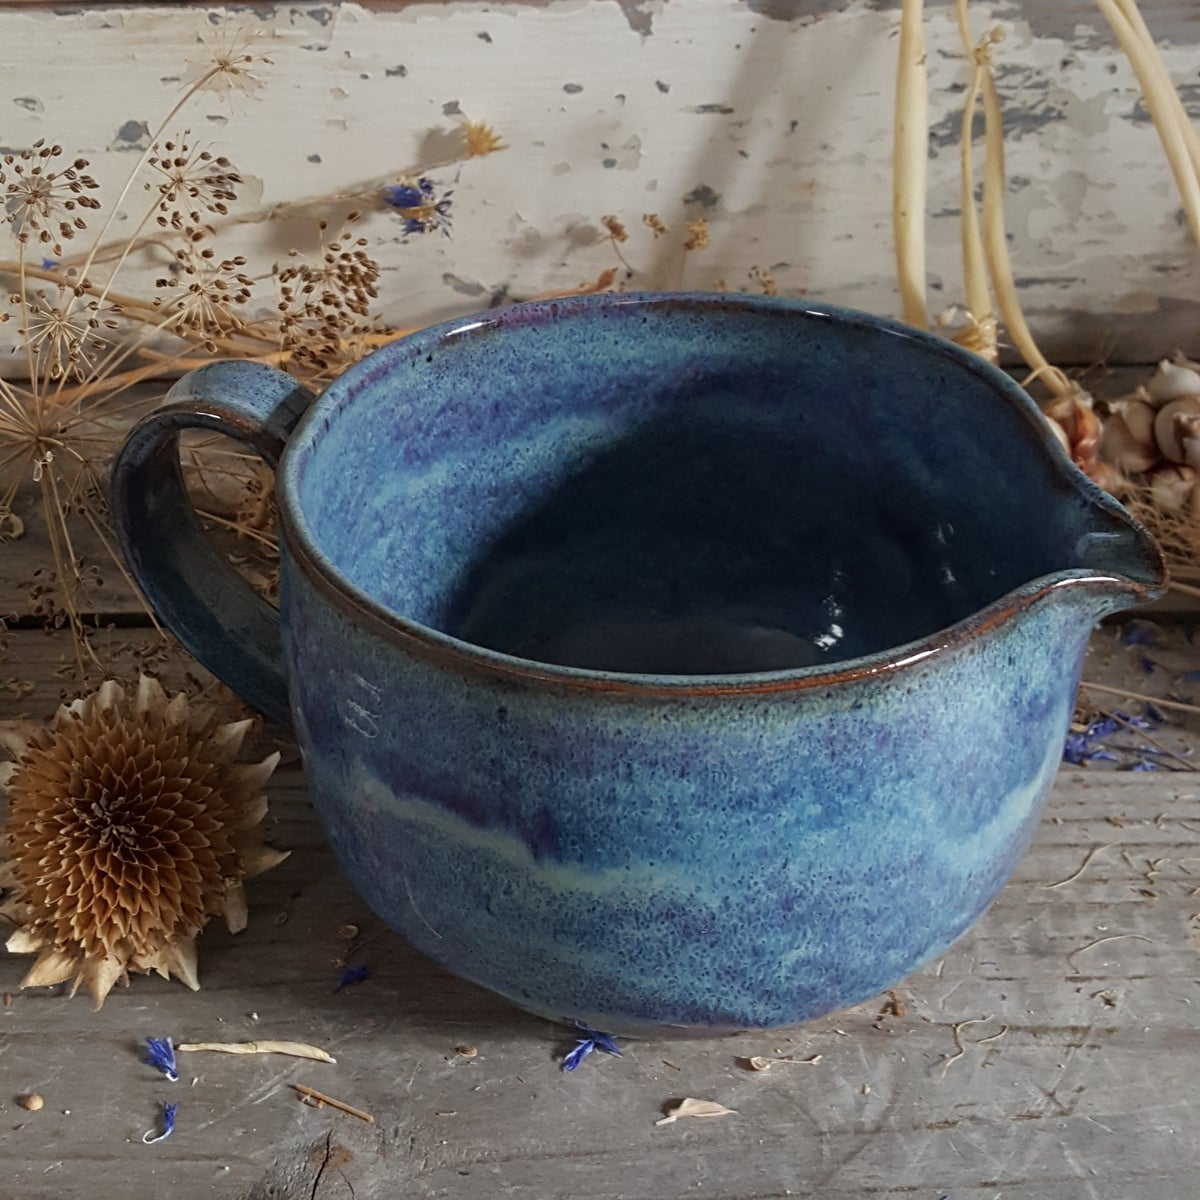 Image of Countertop-worthy Batter Bowl 3 cup with Tiny Duckling Pitcher: : Lupine (Periwinkle)